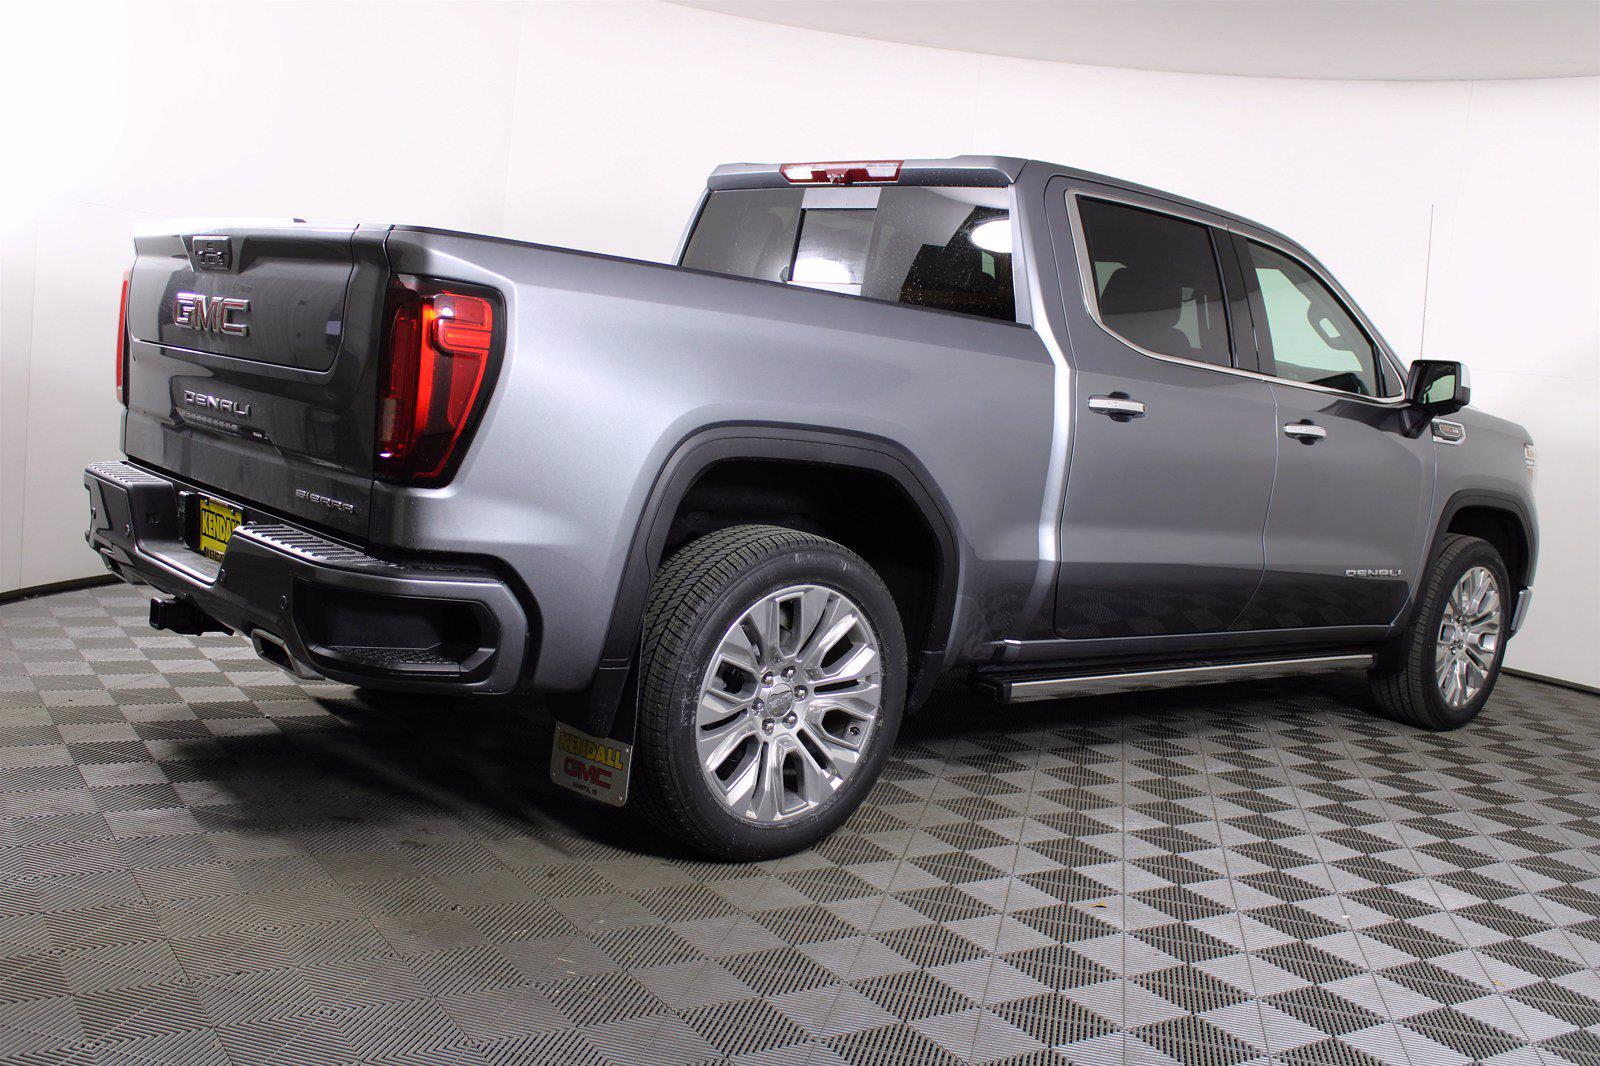 2021 GMC Sierra 1500 Crew Cab 4x4, Pickup #D410429 - photo 7